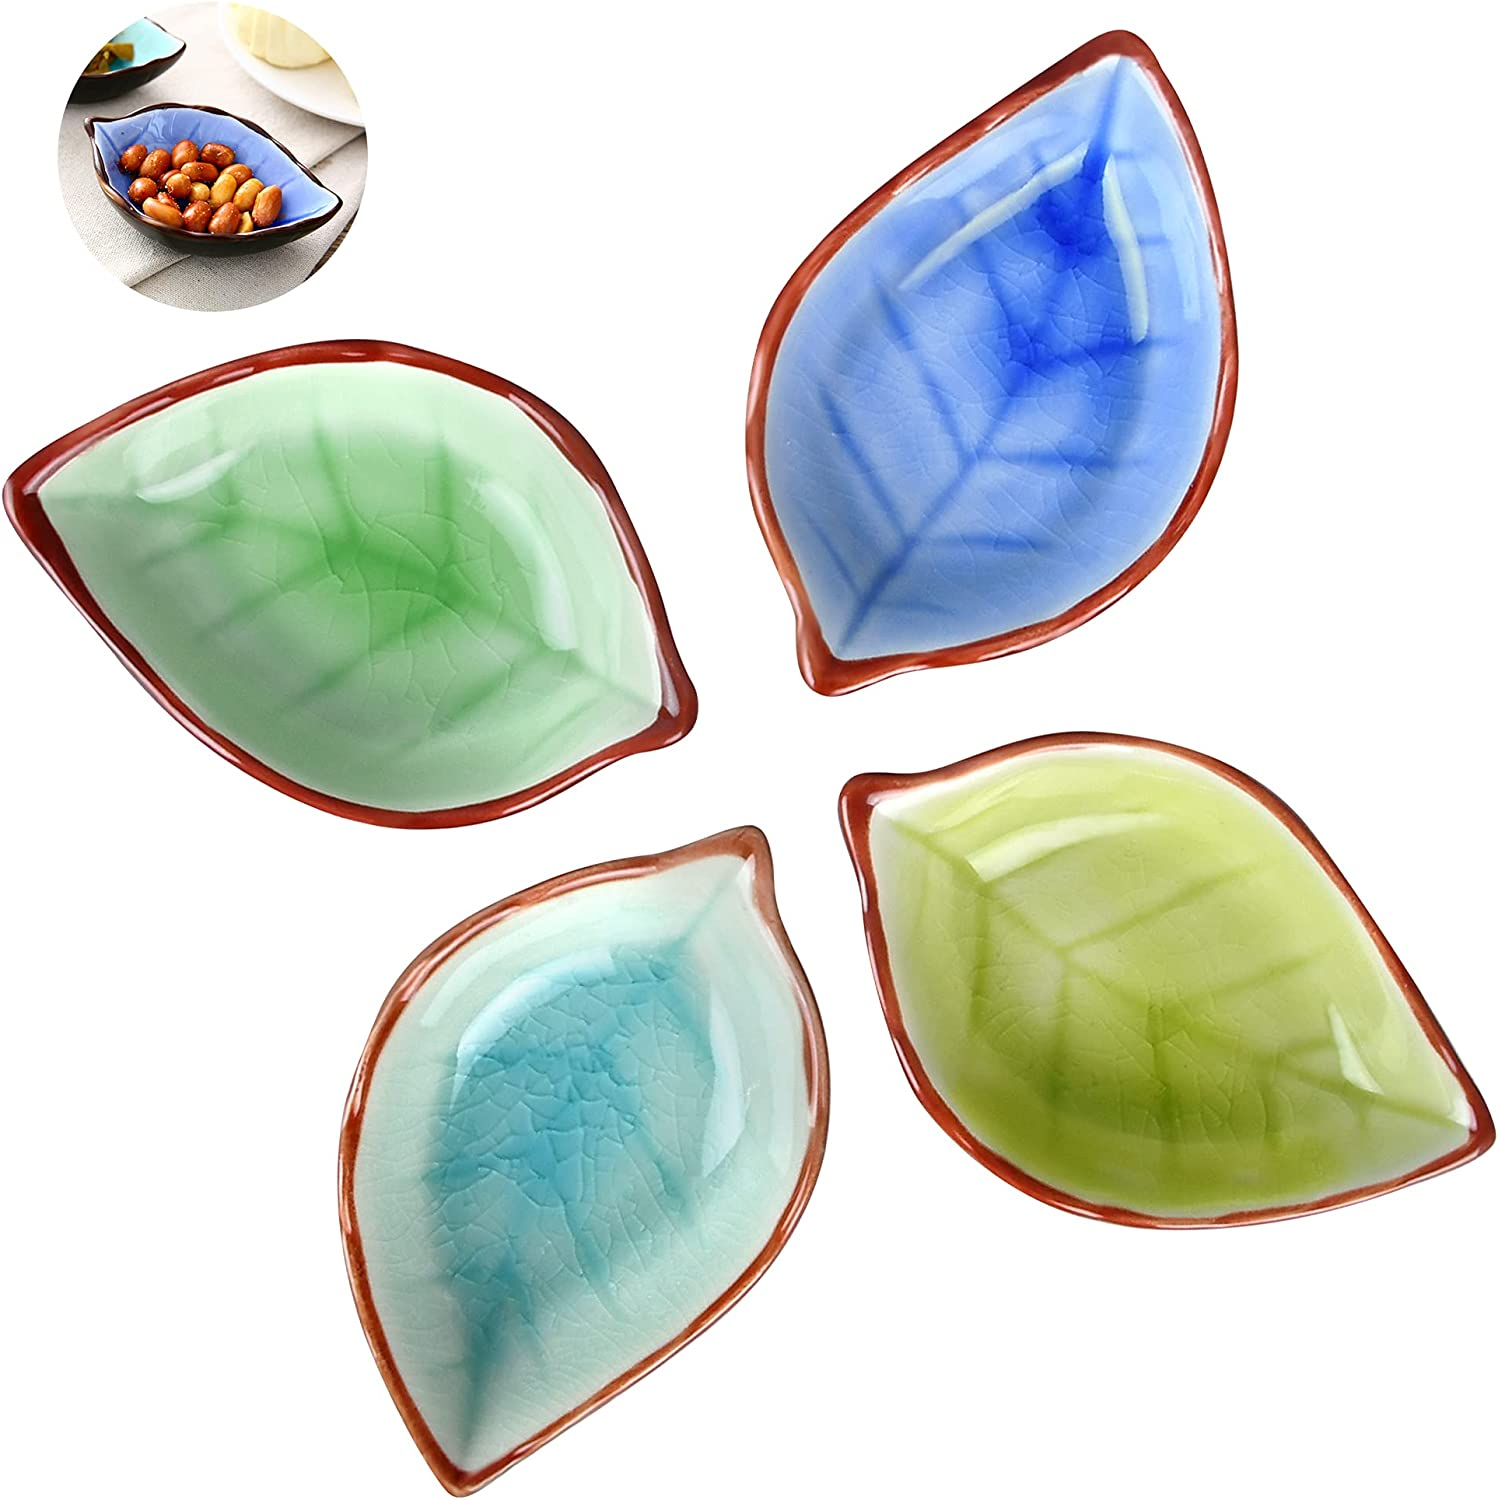 Worldity 4 Pack Assorted Color Ceramic Sauce Dishes Plates, Cute Leaf Shape Sauce Bowls Mini Tasting Dishes Dipping Bowls for Sushi Appetizer, Oil, Vinegar, Ketchup, Paste Jam